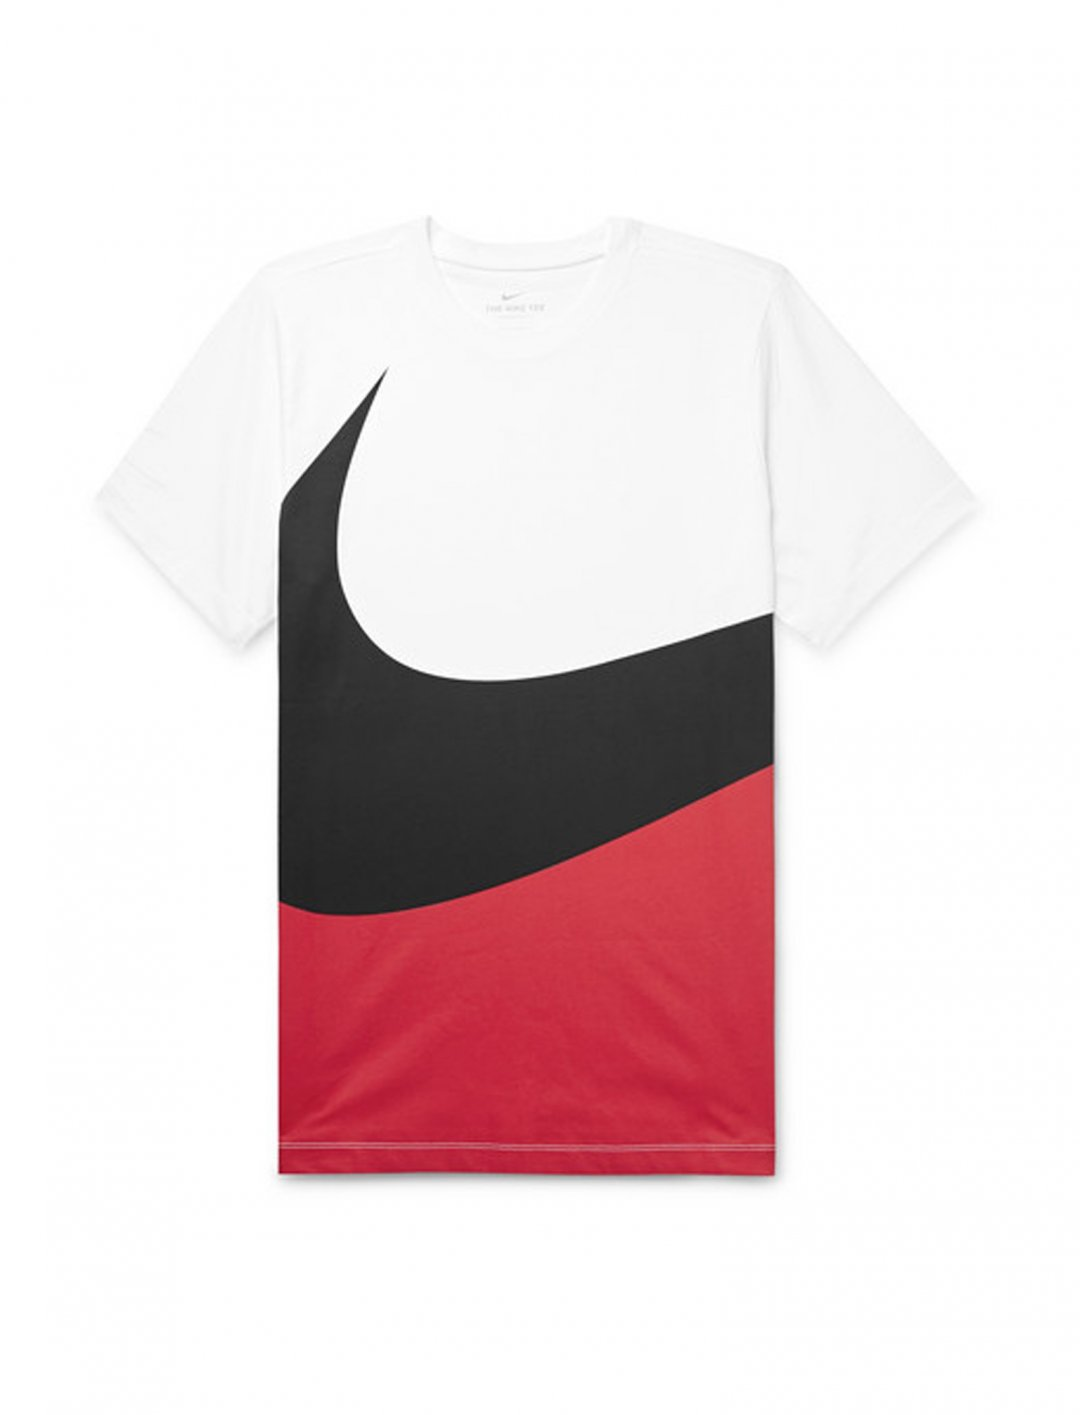 Sneakbo's T-shirt Clothing Nike